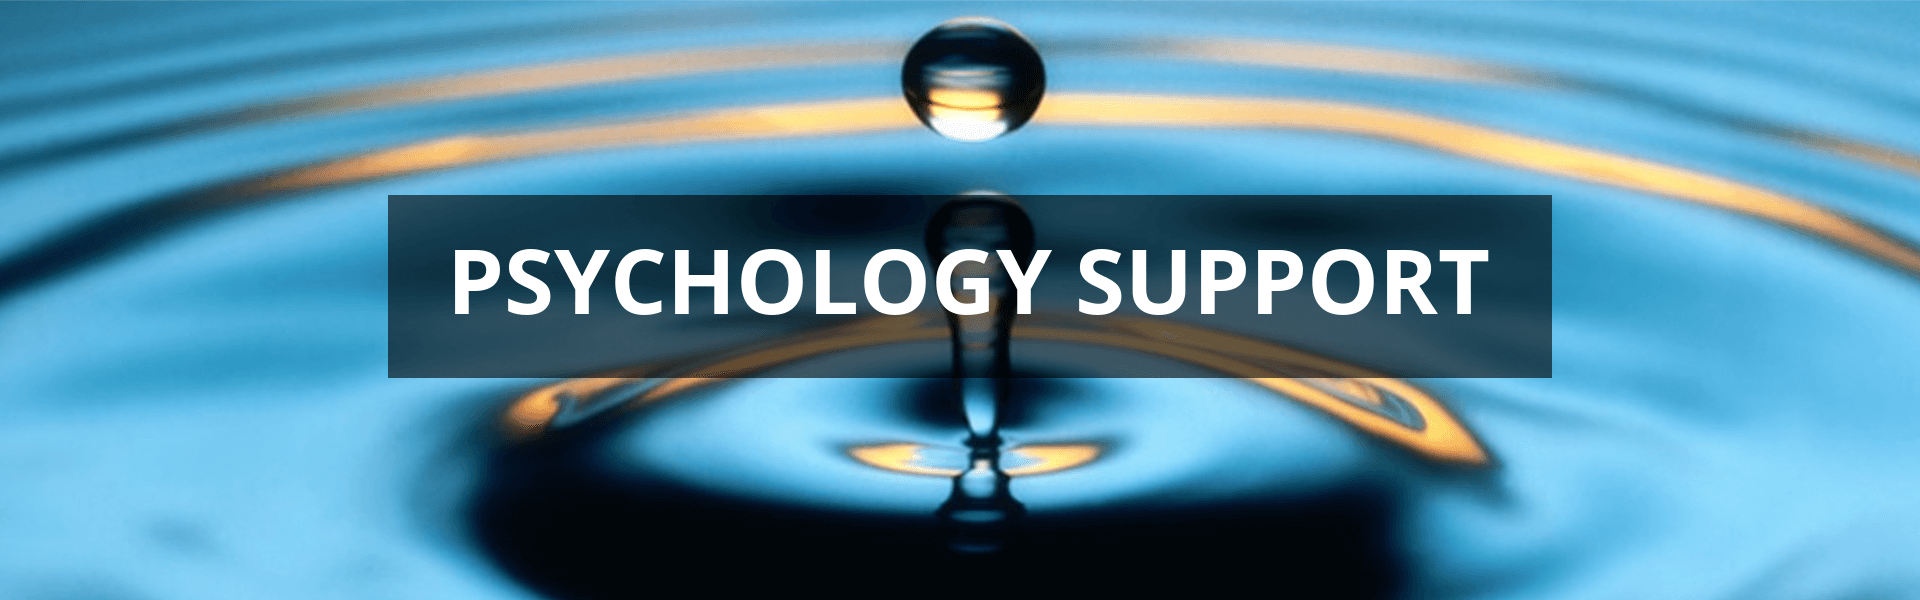 Psychology Support